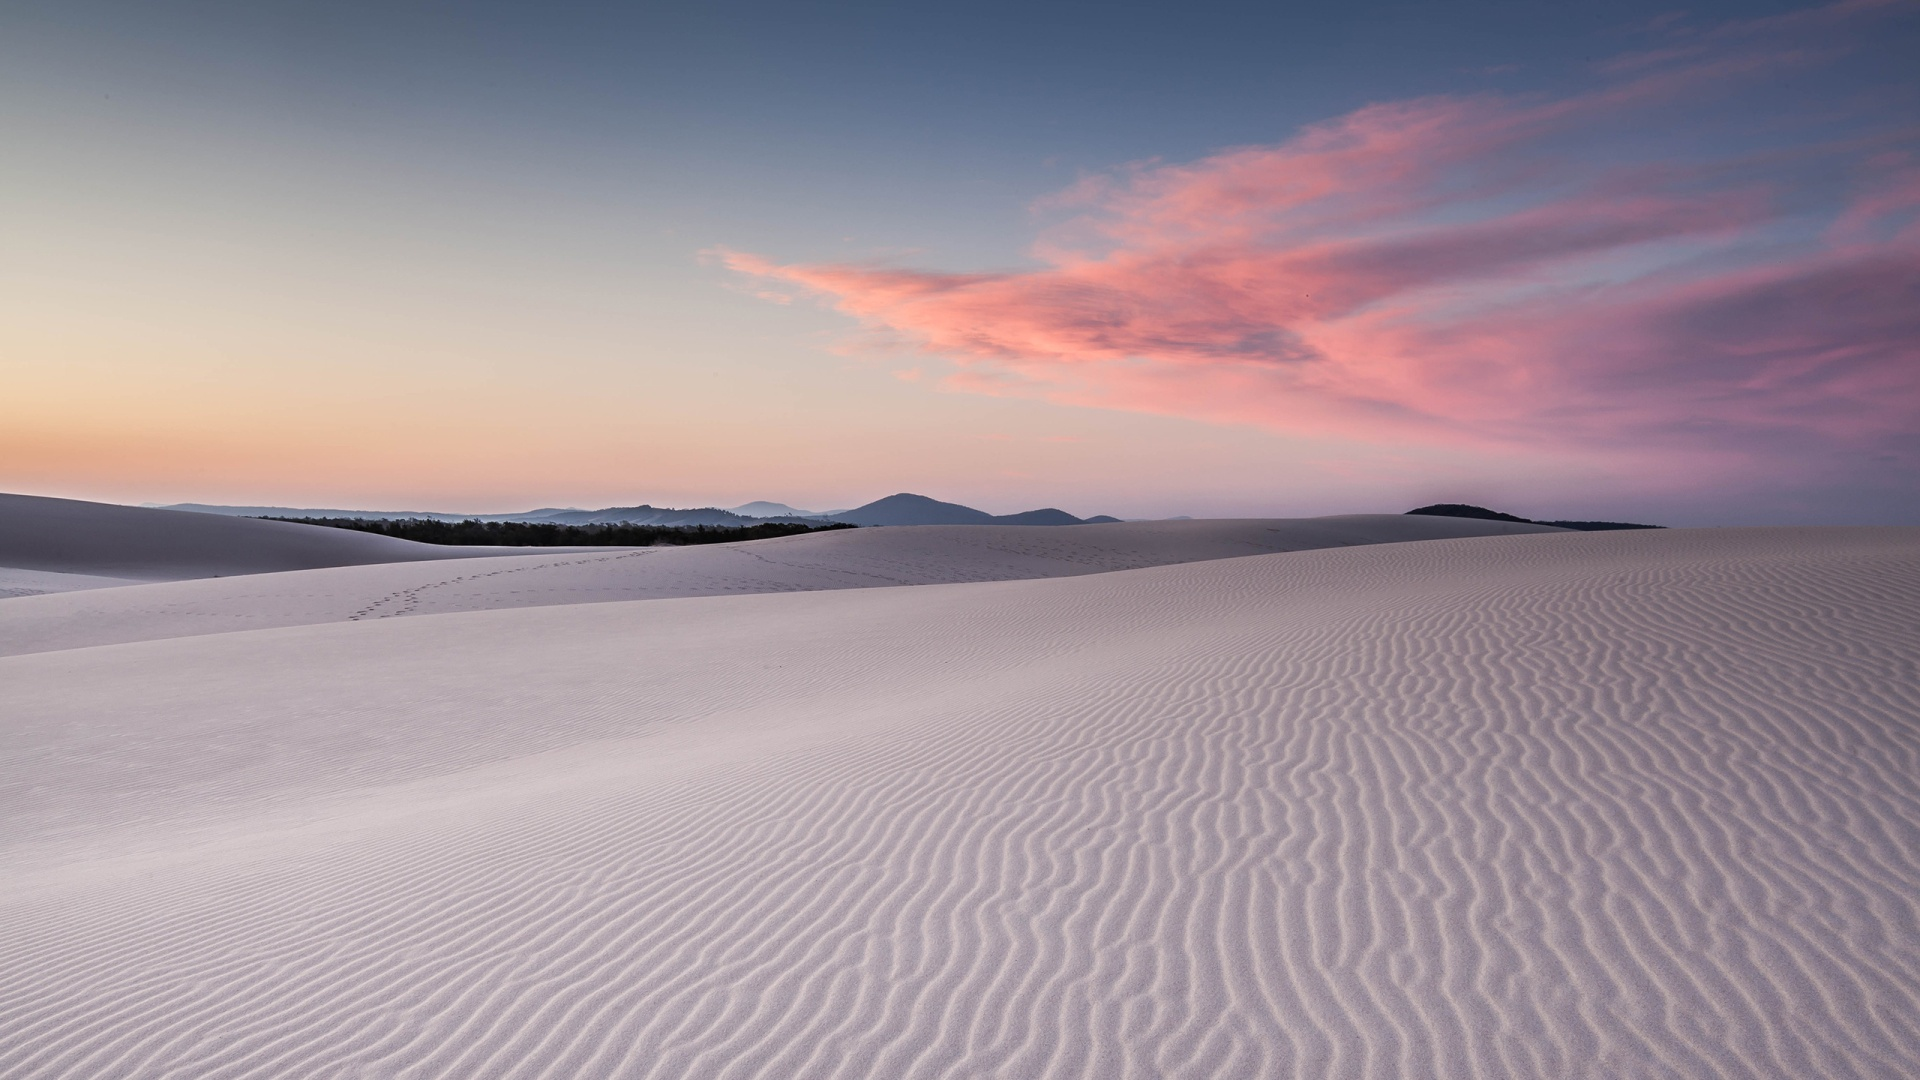 Ooty Hd Wallpapers 1920x1080 White Desert Amp Pink Clouds Desktop Pc And Mac